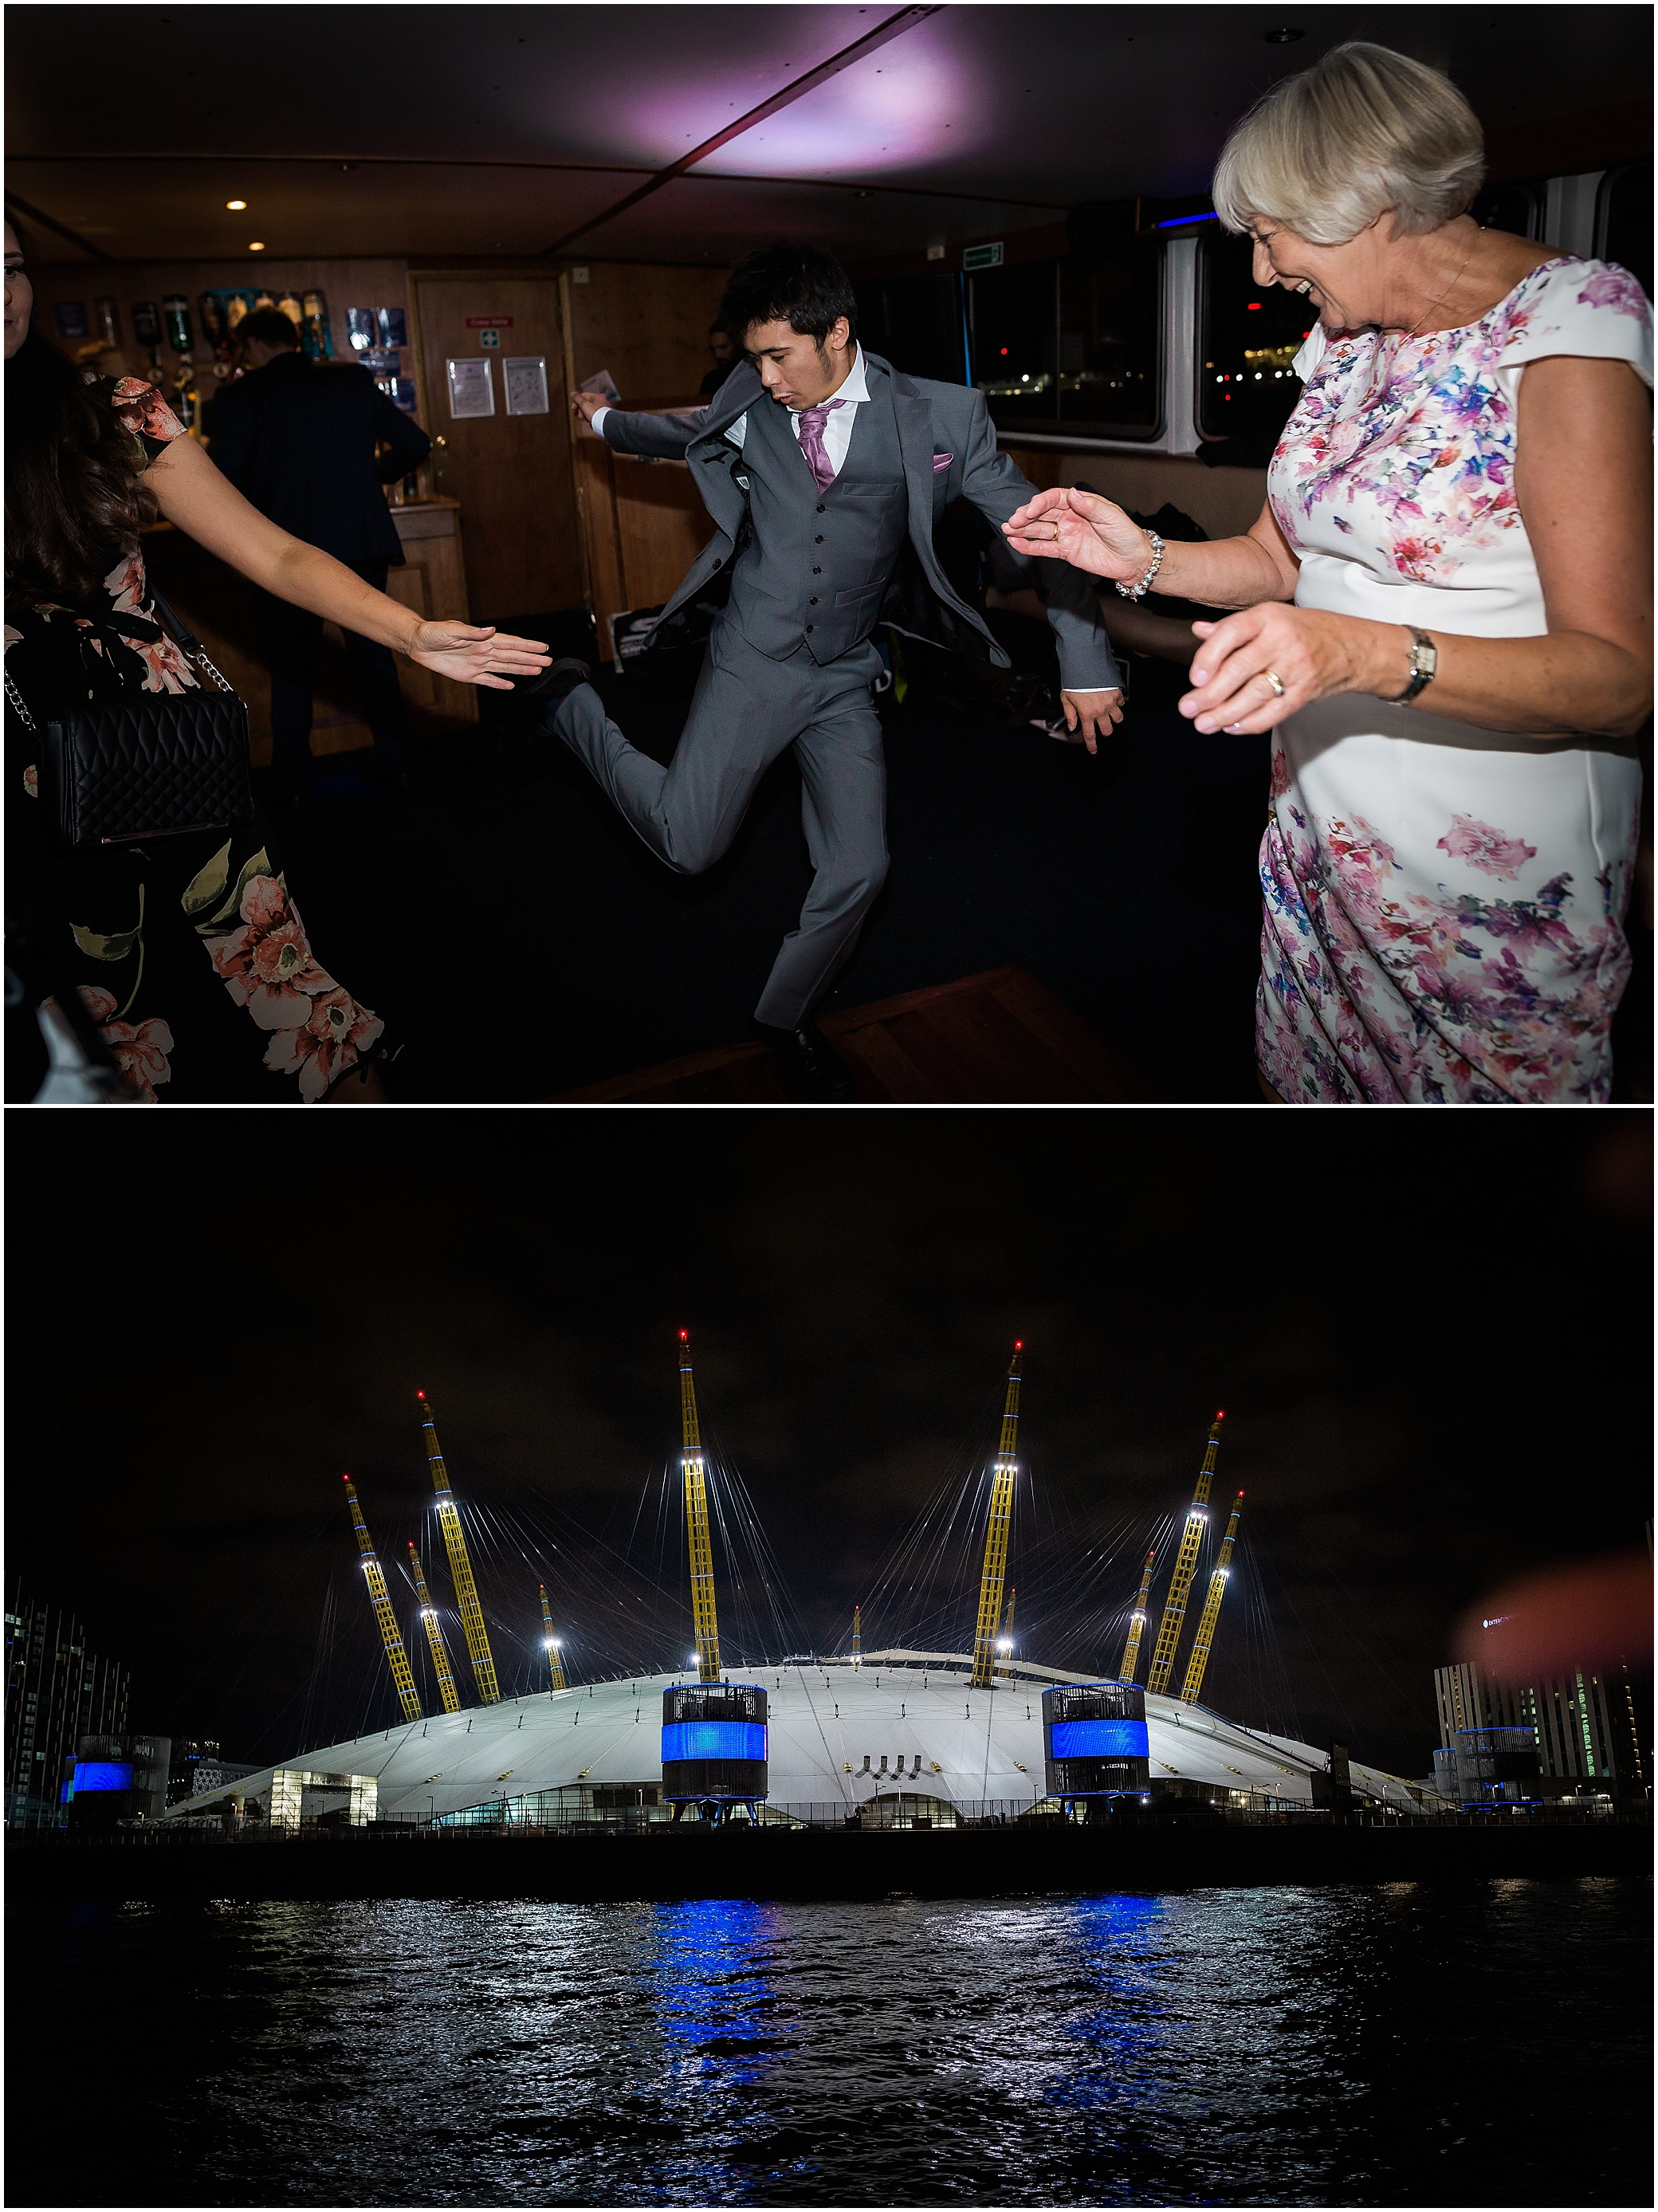 Wedding reception dancing on a riverboat on the Thames in London with the O2 arena